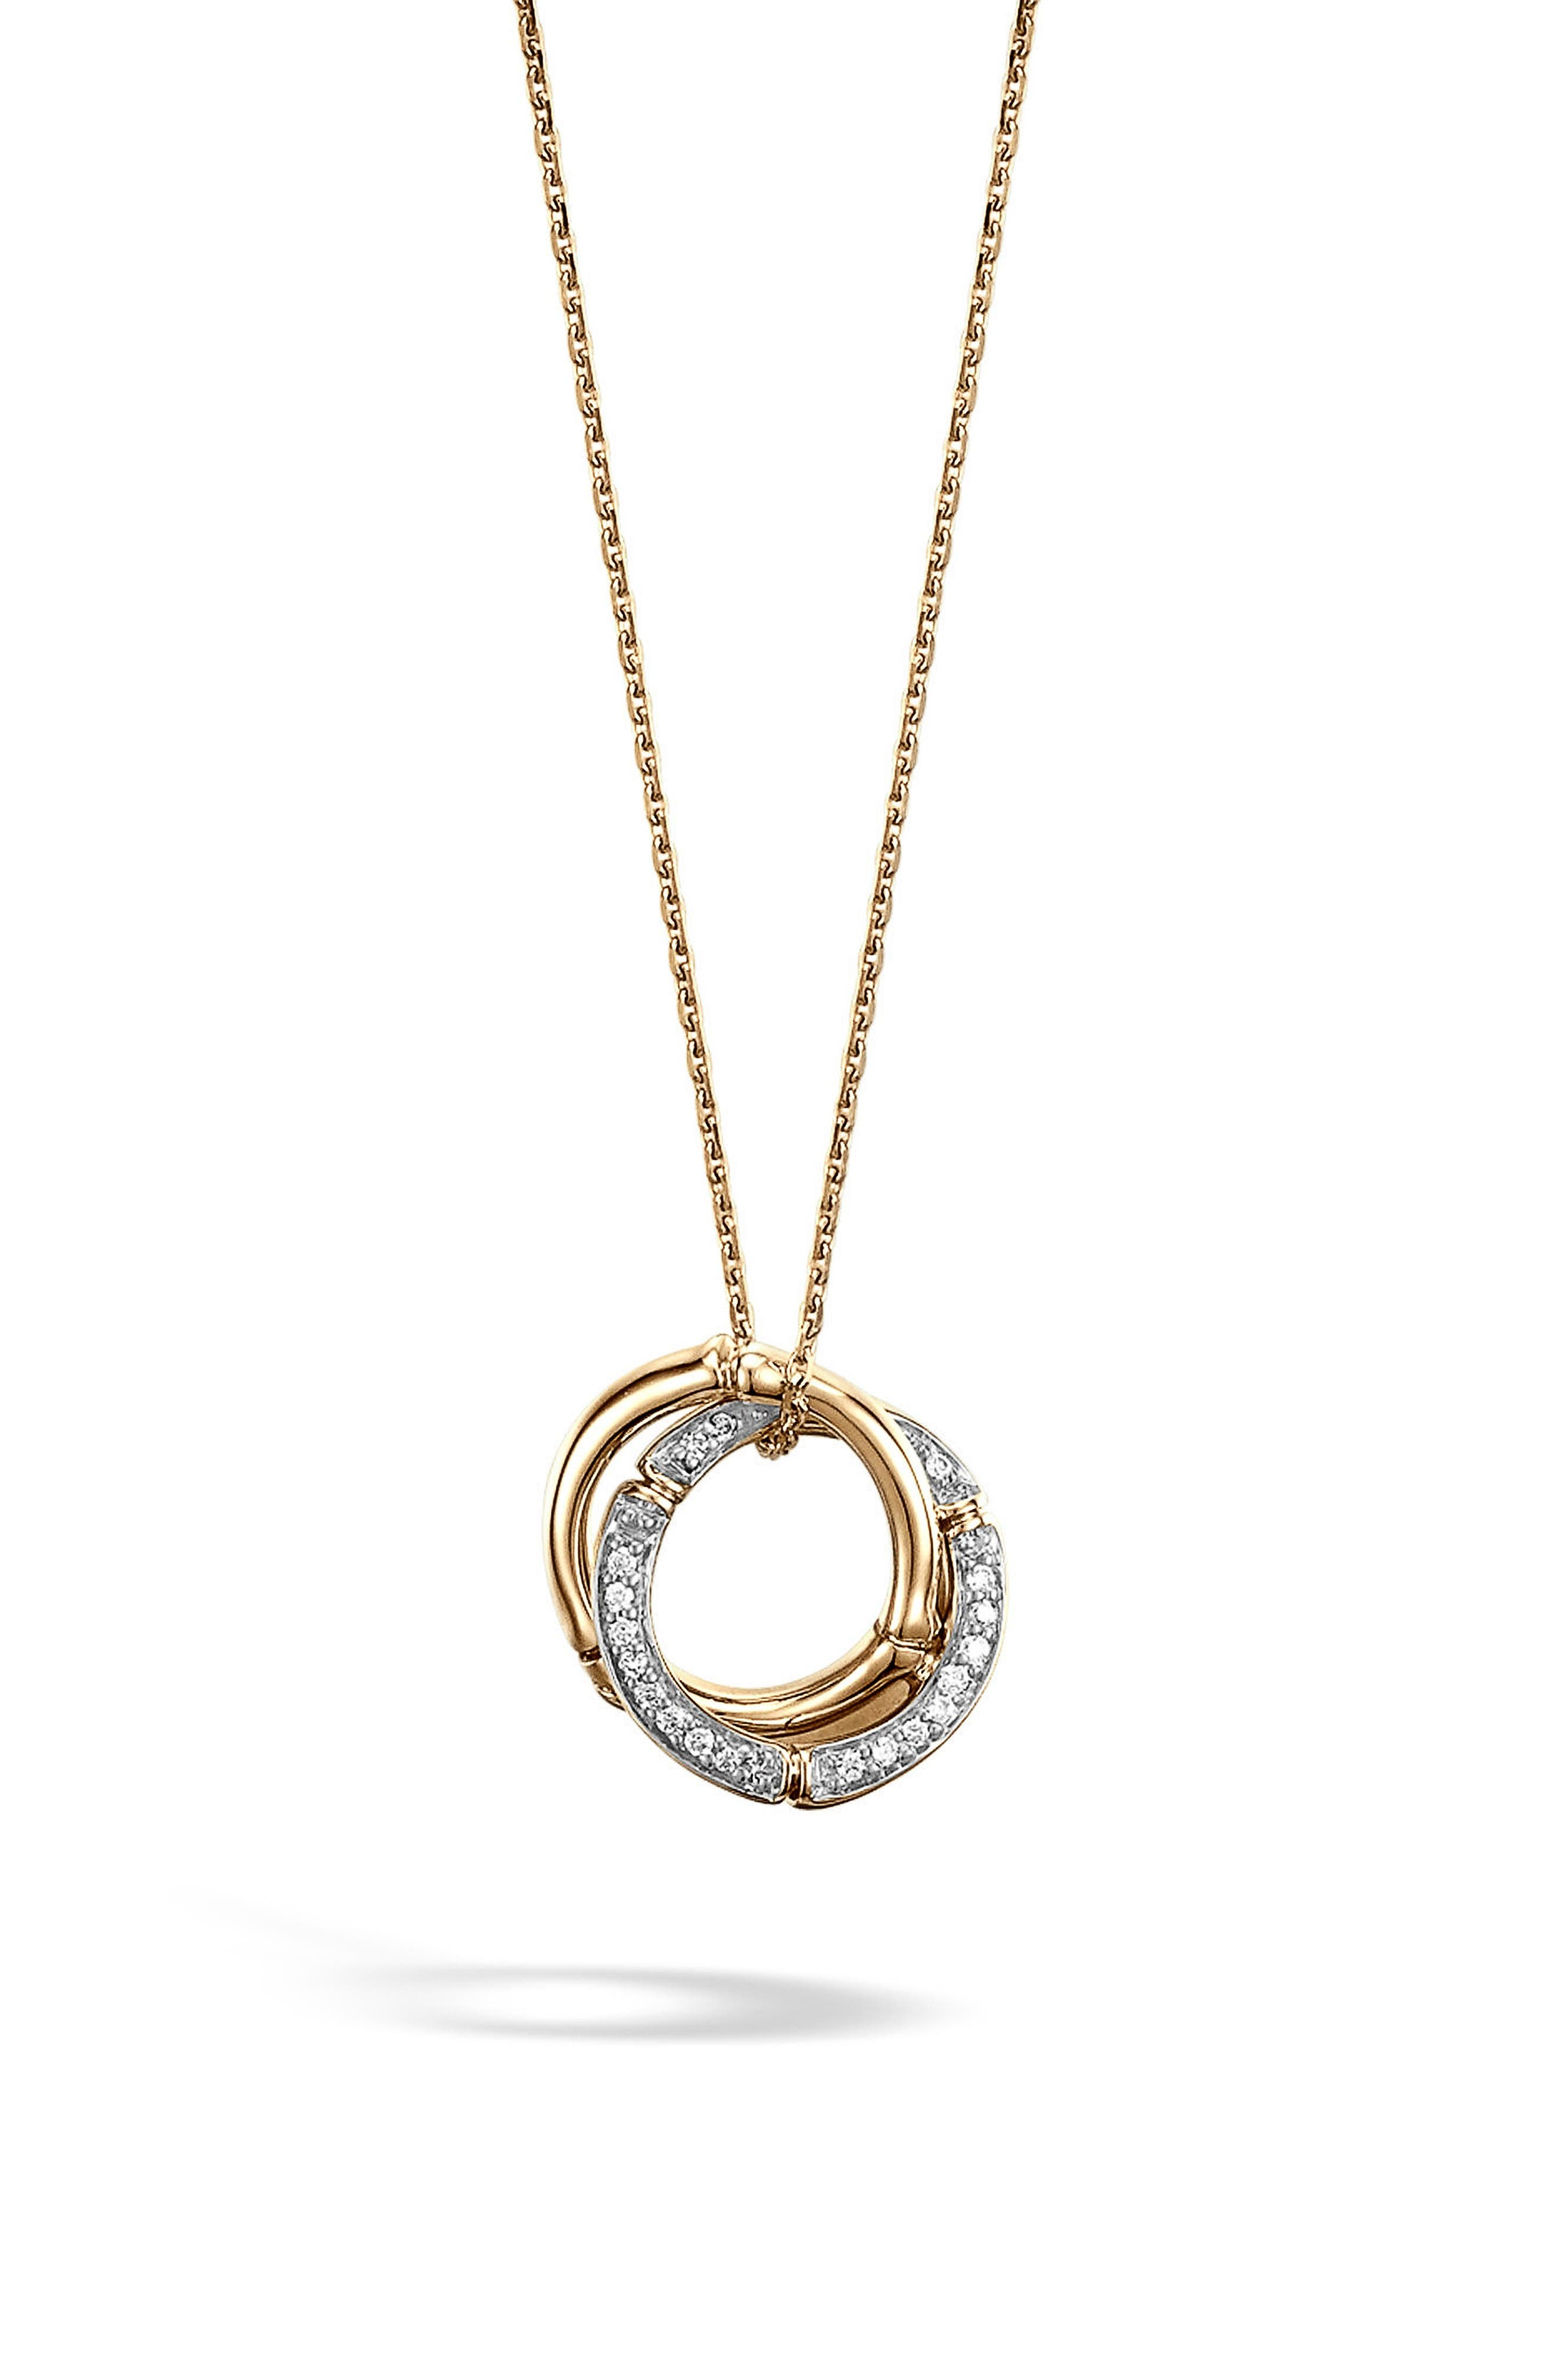 Main Image - John Hardy Bamboo Diamond & 18k Gold Pendant Necklace